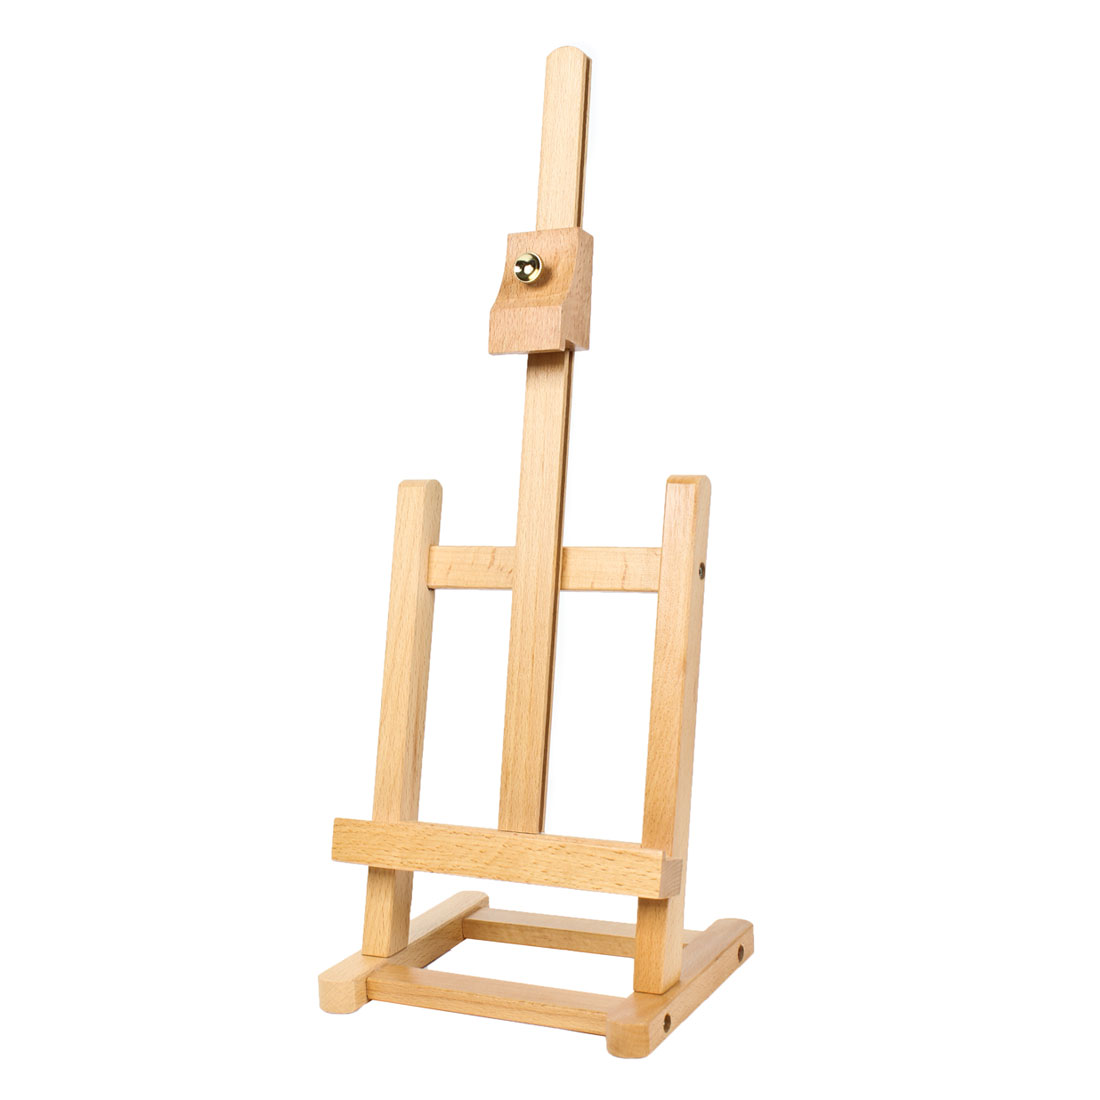 Wooden Adjustable Office Meeting Display Stand Artist Painting Desk Easel